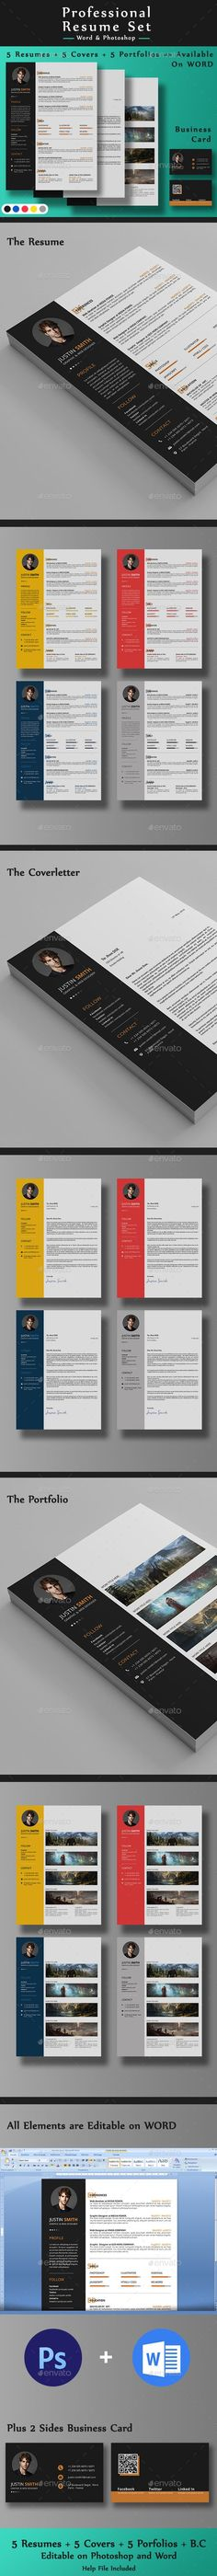 25 best projects to try images on pinterest design resume resume